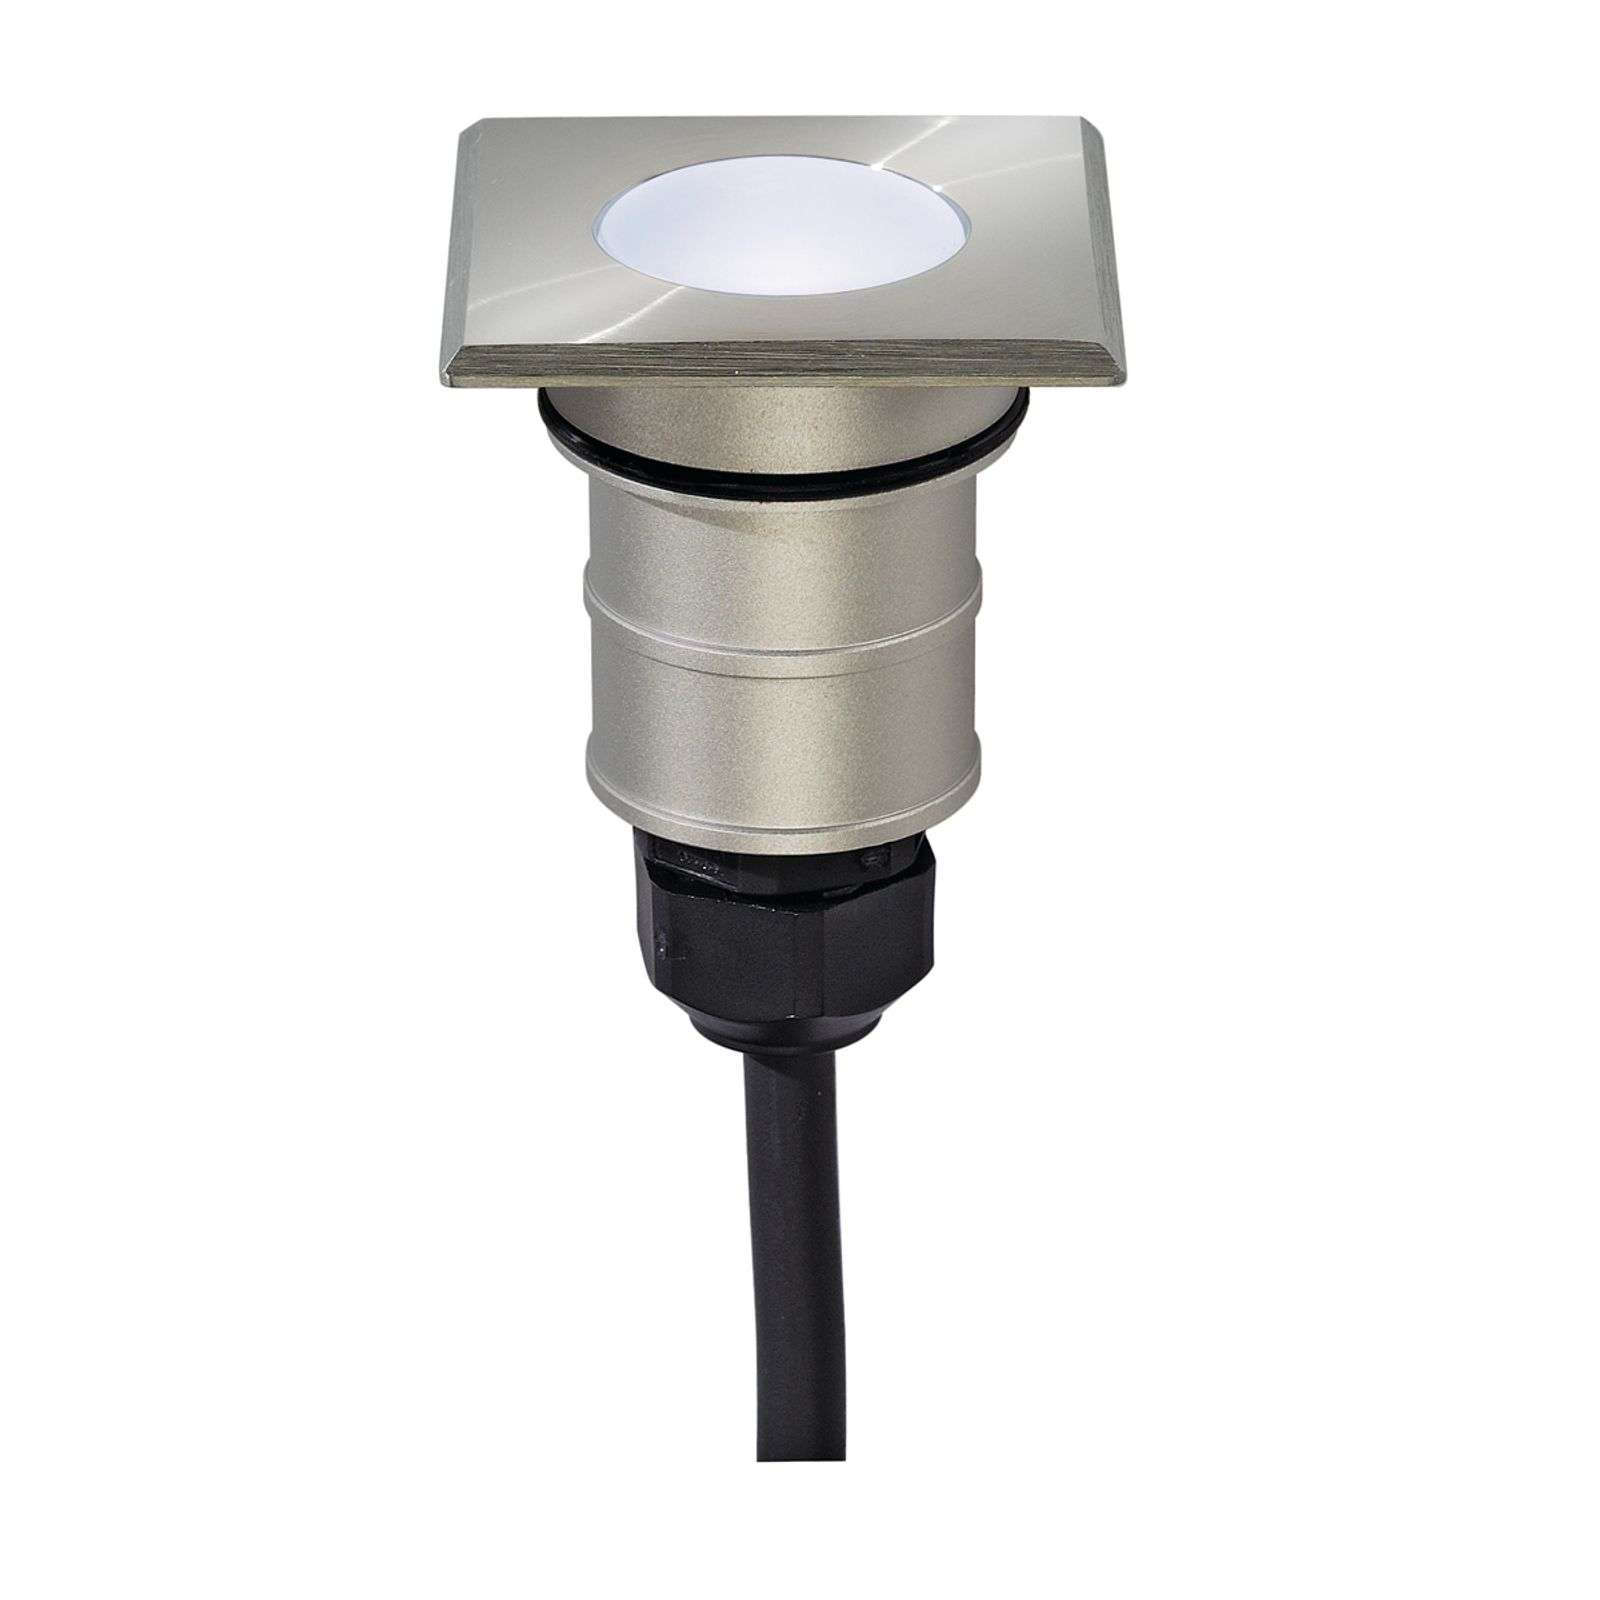 Led-inbouwspot POWER TRAIL-LITE Square, daglicht